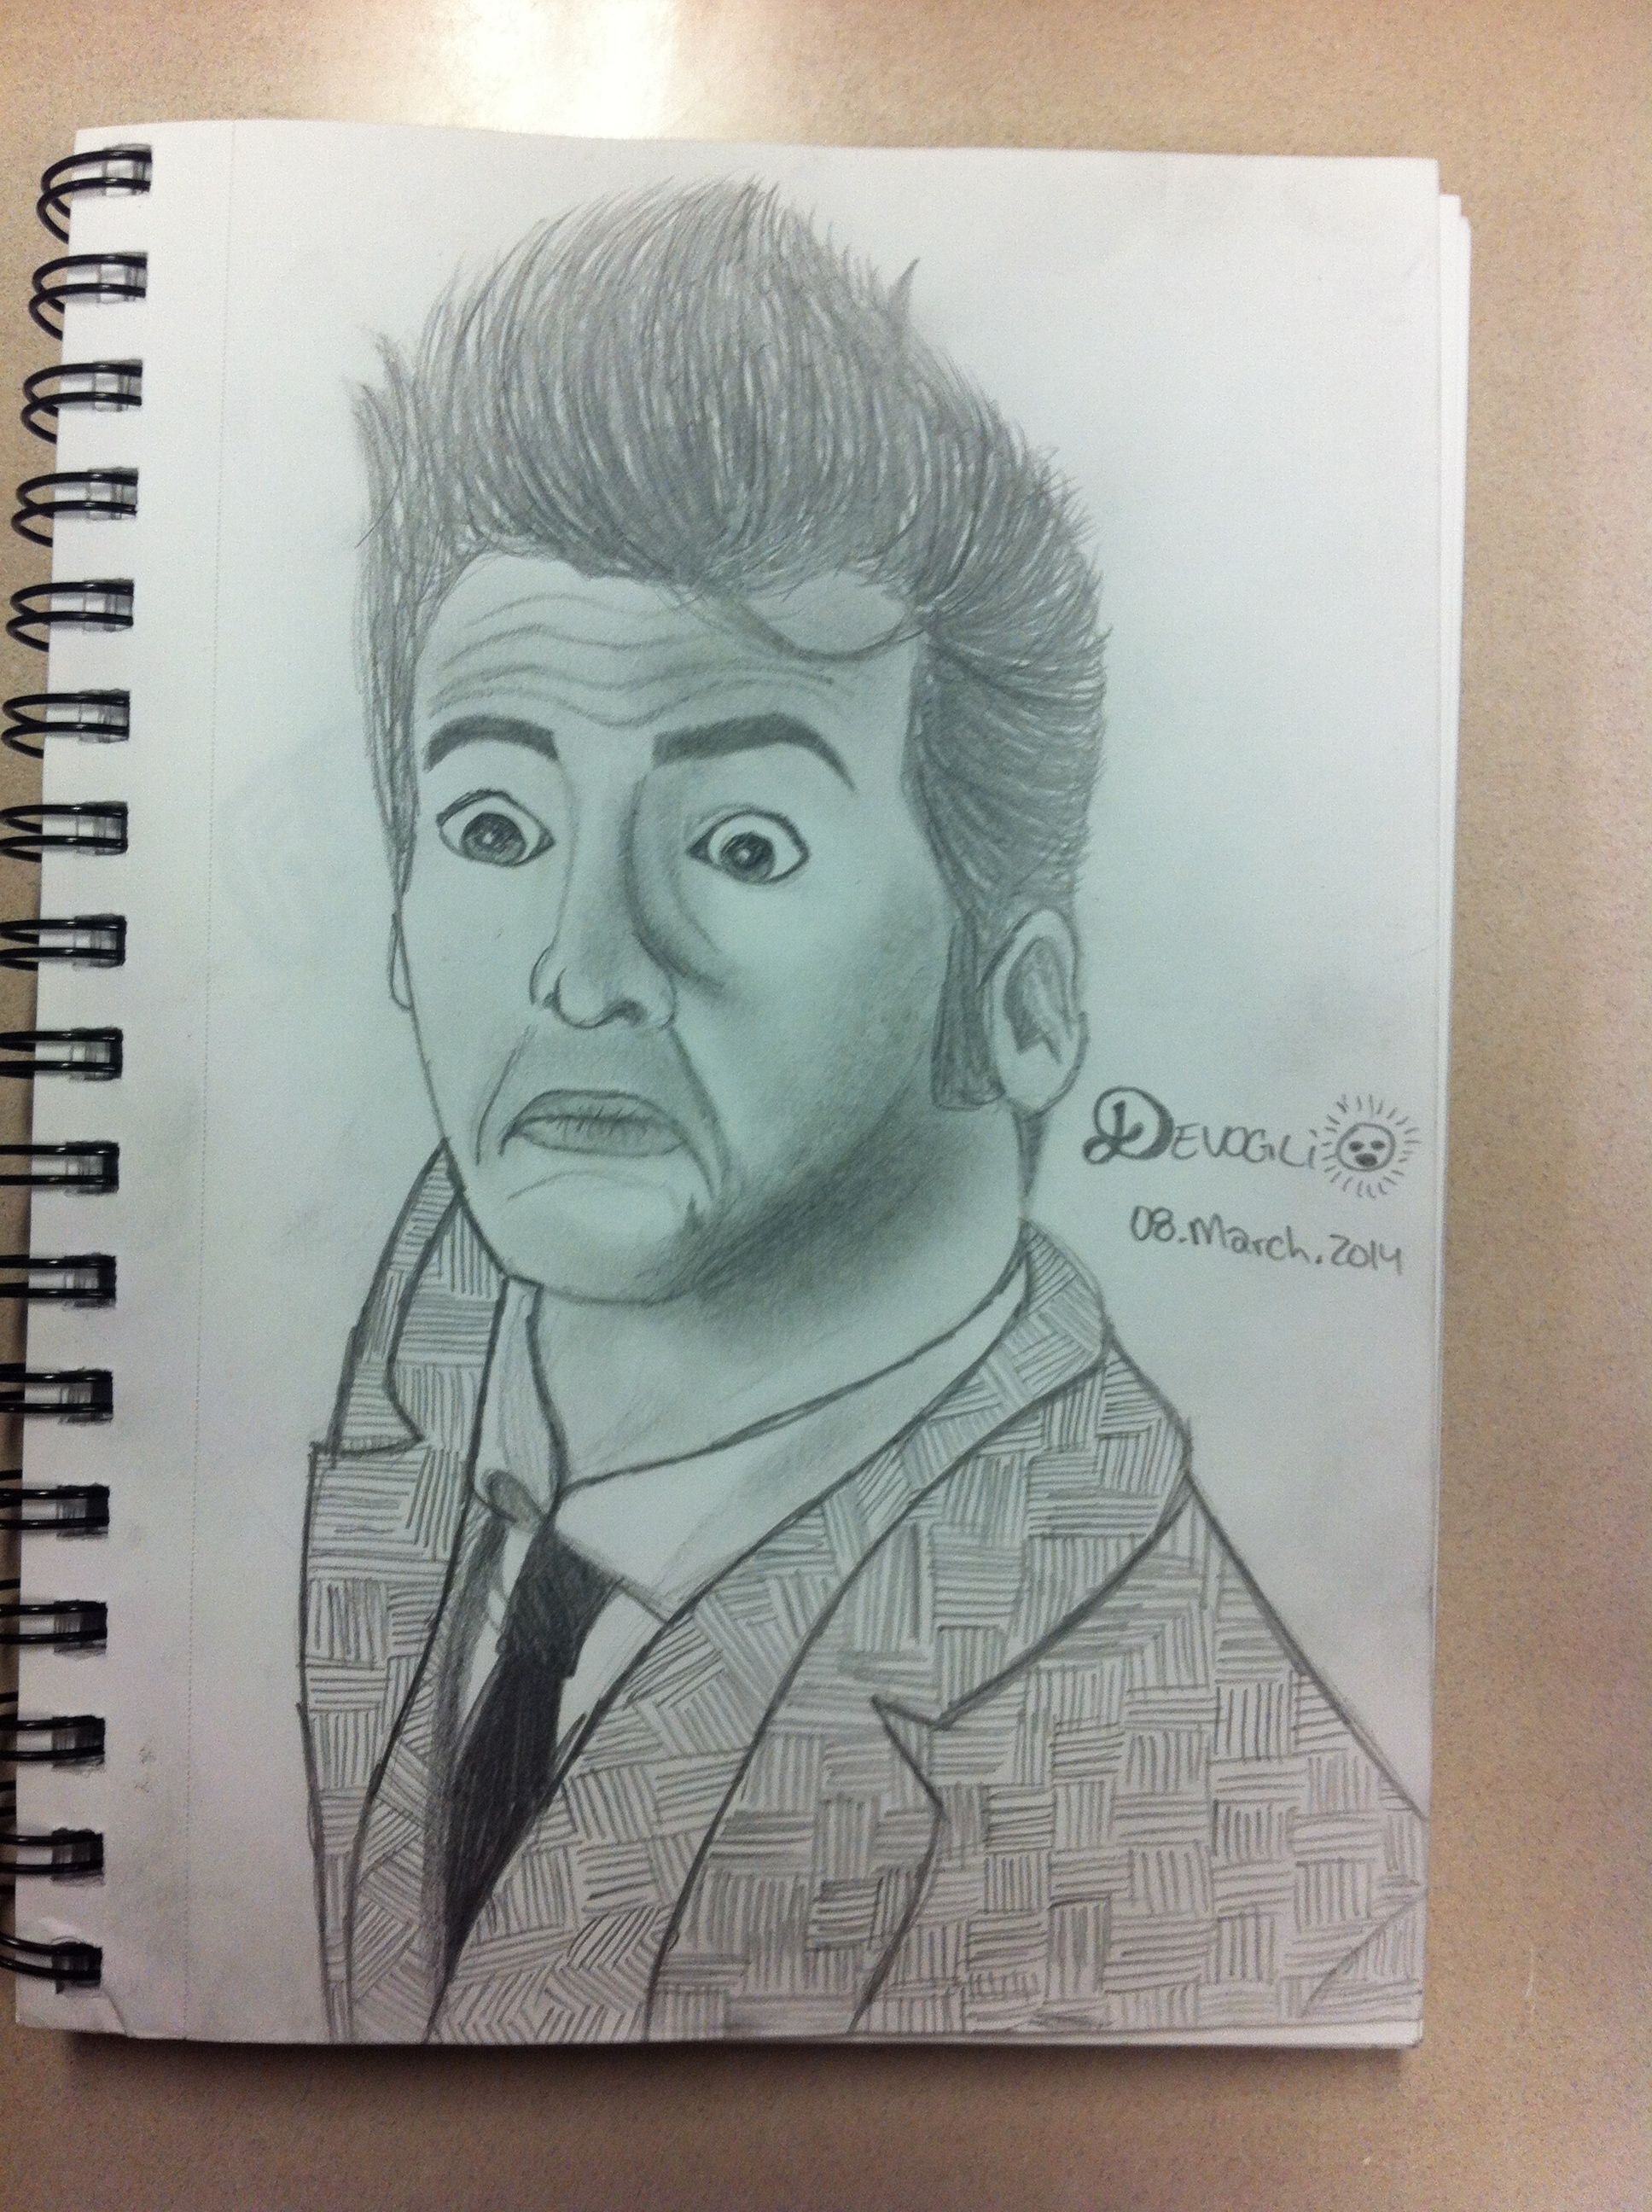 My first piece of Doctor Who fanart. No regrets.